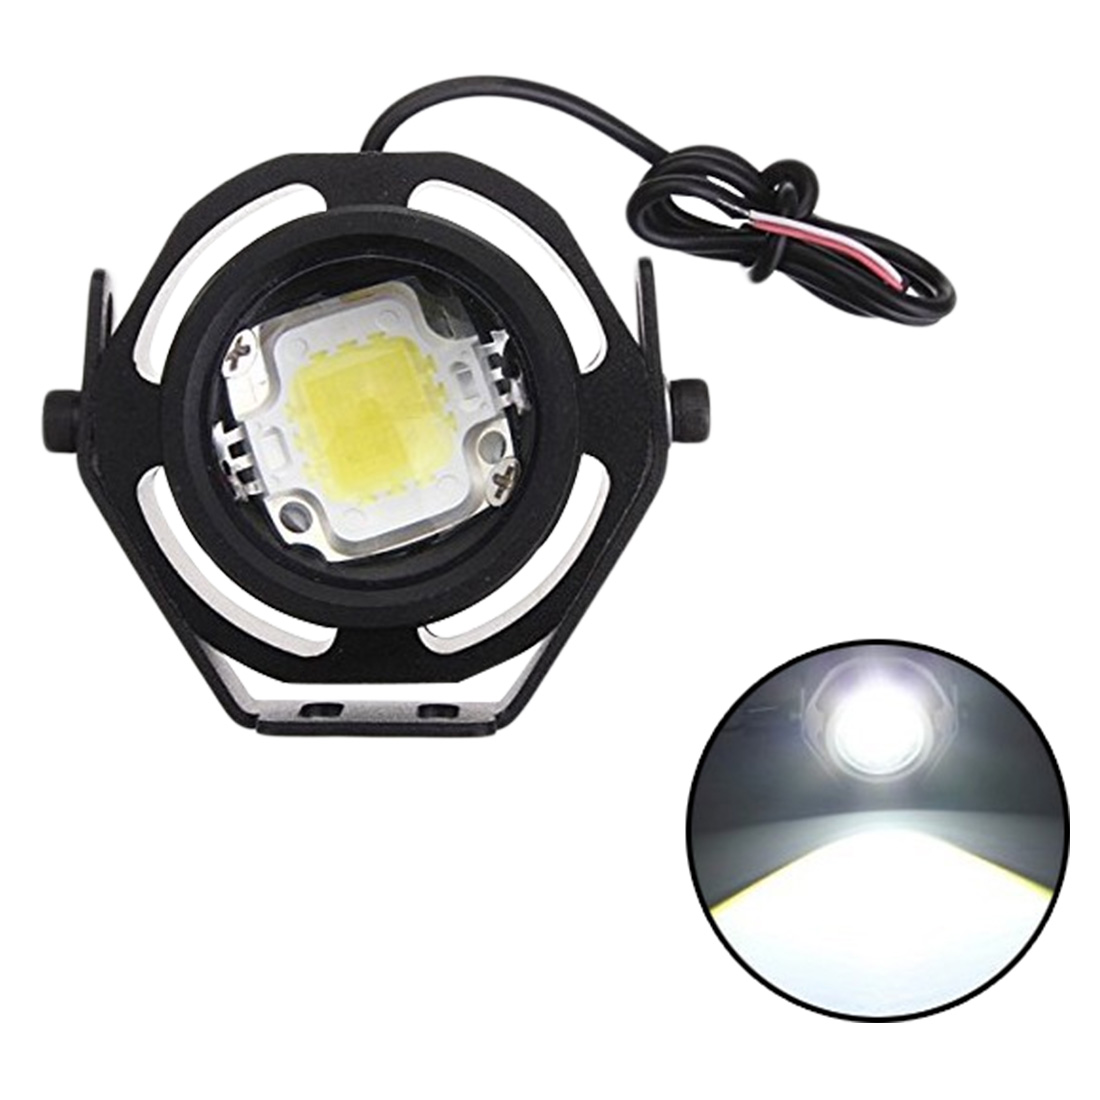 Tonewan New arrive 2Pcs Waterproof Car DRL LED Eagle Eye Light 10W  Car Fog Daytime Running Light Reverse Backup Parking Lamp new arrival a pair 10w pure white 5630 3 smd led eagle eye lamp car back up daytime running fog light bulb 120lumen 18mm dc12v